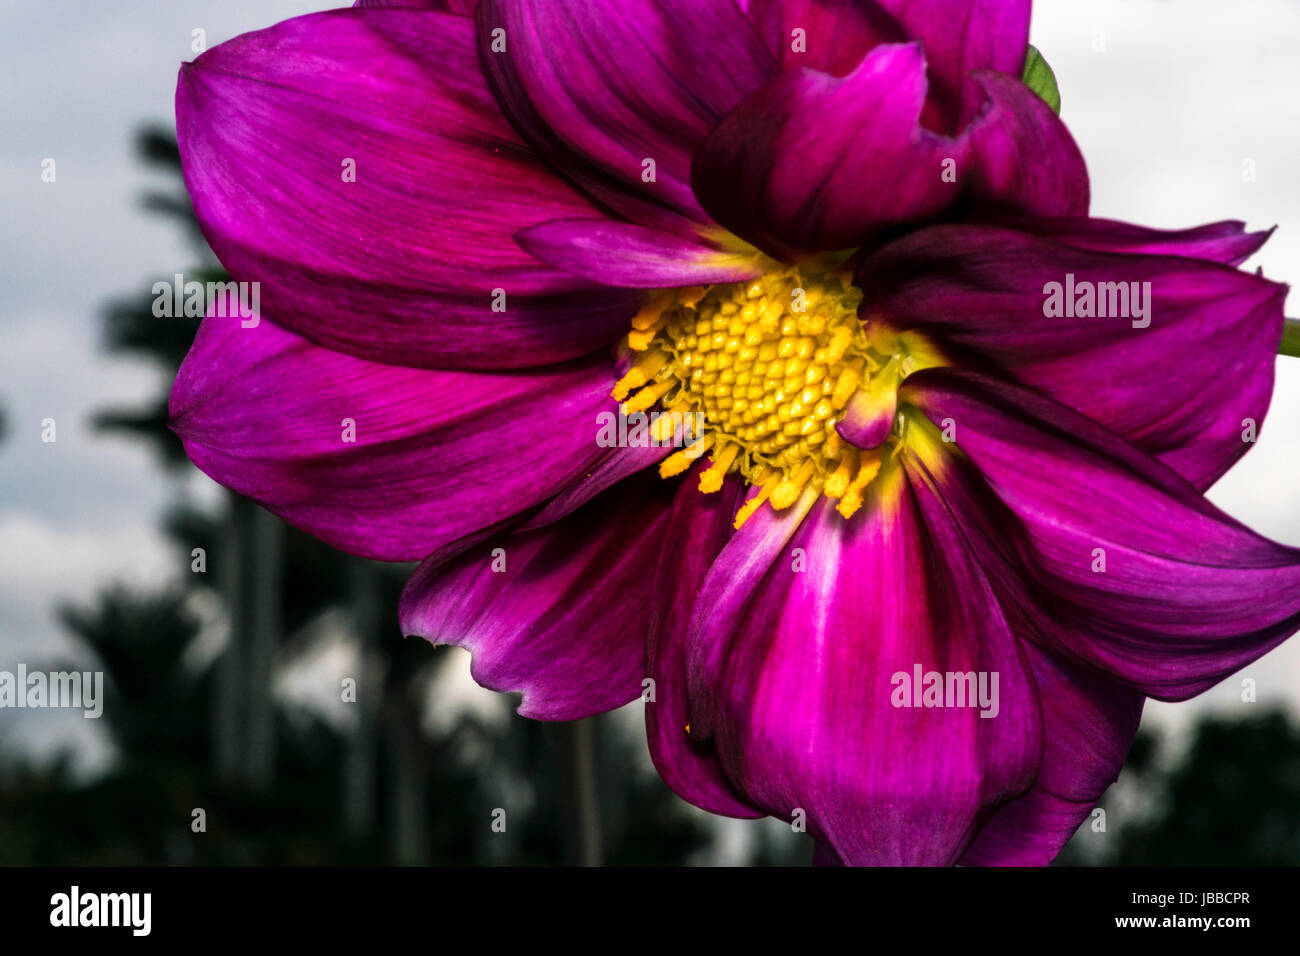 Yellow stamen with pollen on a purple flower stock photo 144695679 yellow stamen with pollen on a purple flower mightylinksfo